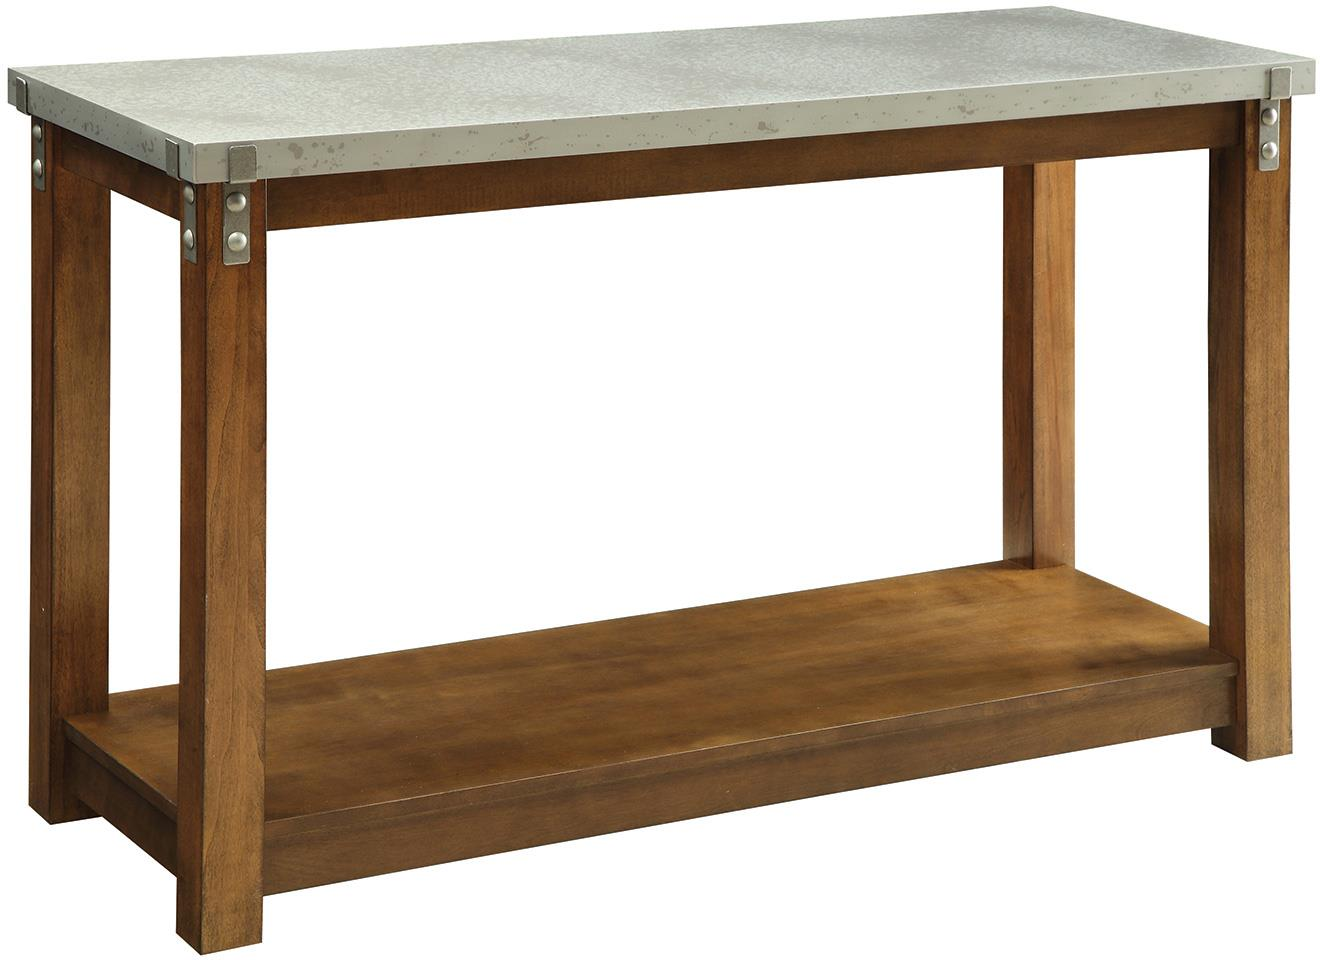 Coaster 70454 Sofa Table - Item Number: 704549